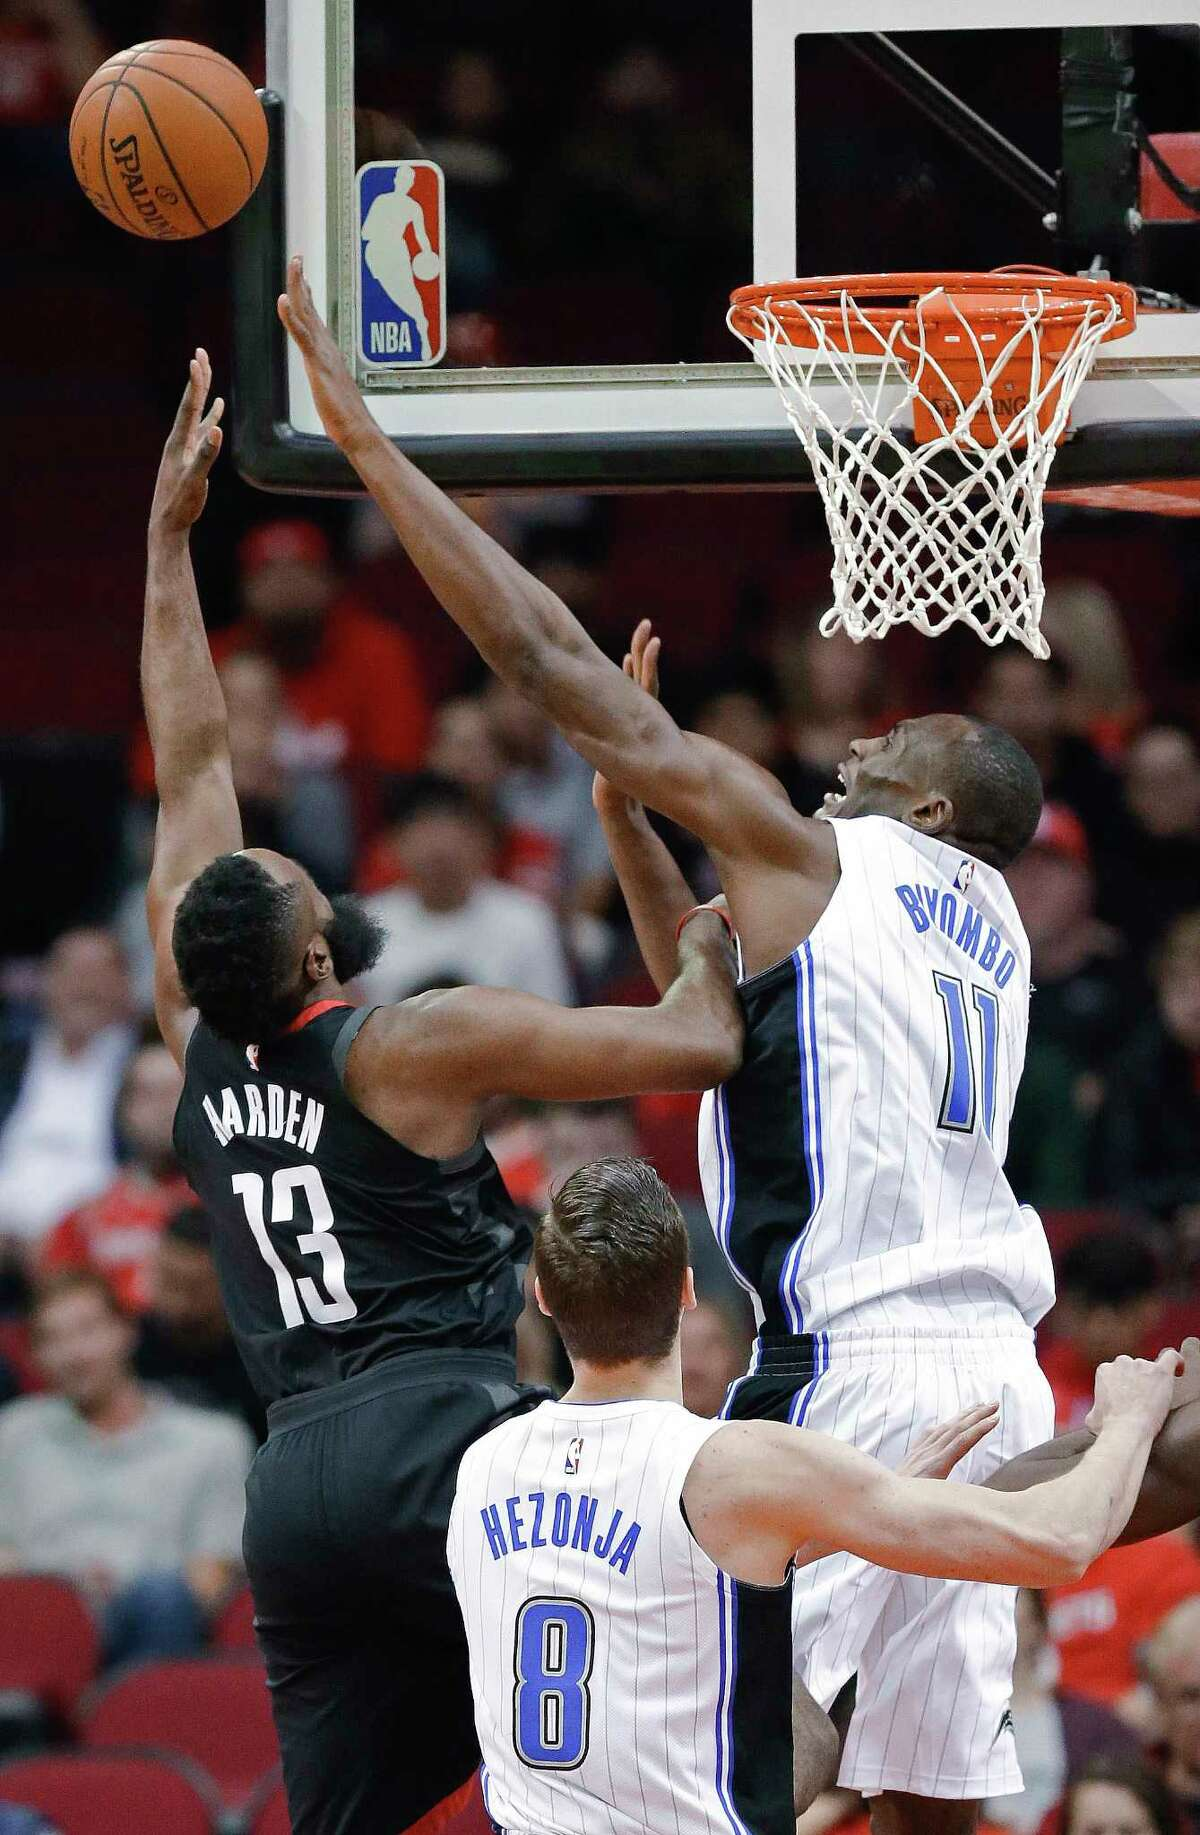 Houston Rockets guard James Harden (13) shoots as Orlando Magic center Bismack Biyombo, right, defends during the first half of an NBA basketball game Tuesday, Jan. 30, 2018, in Houston. (AP Photo/Eric Christian Smith)